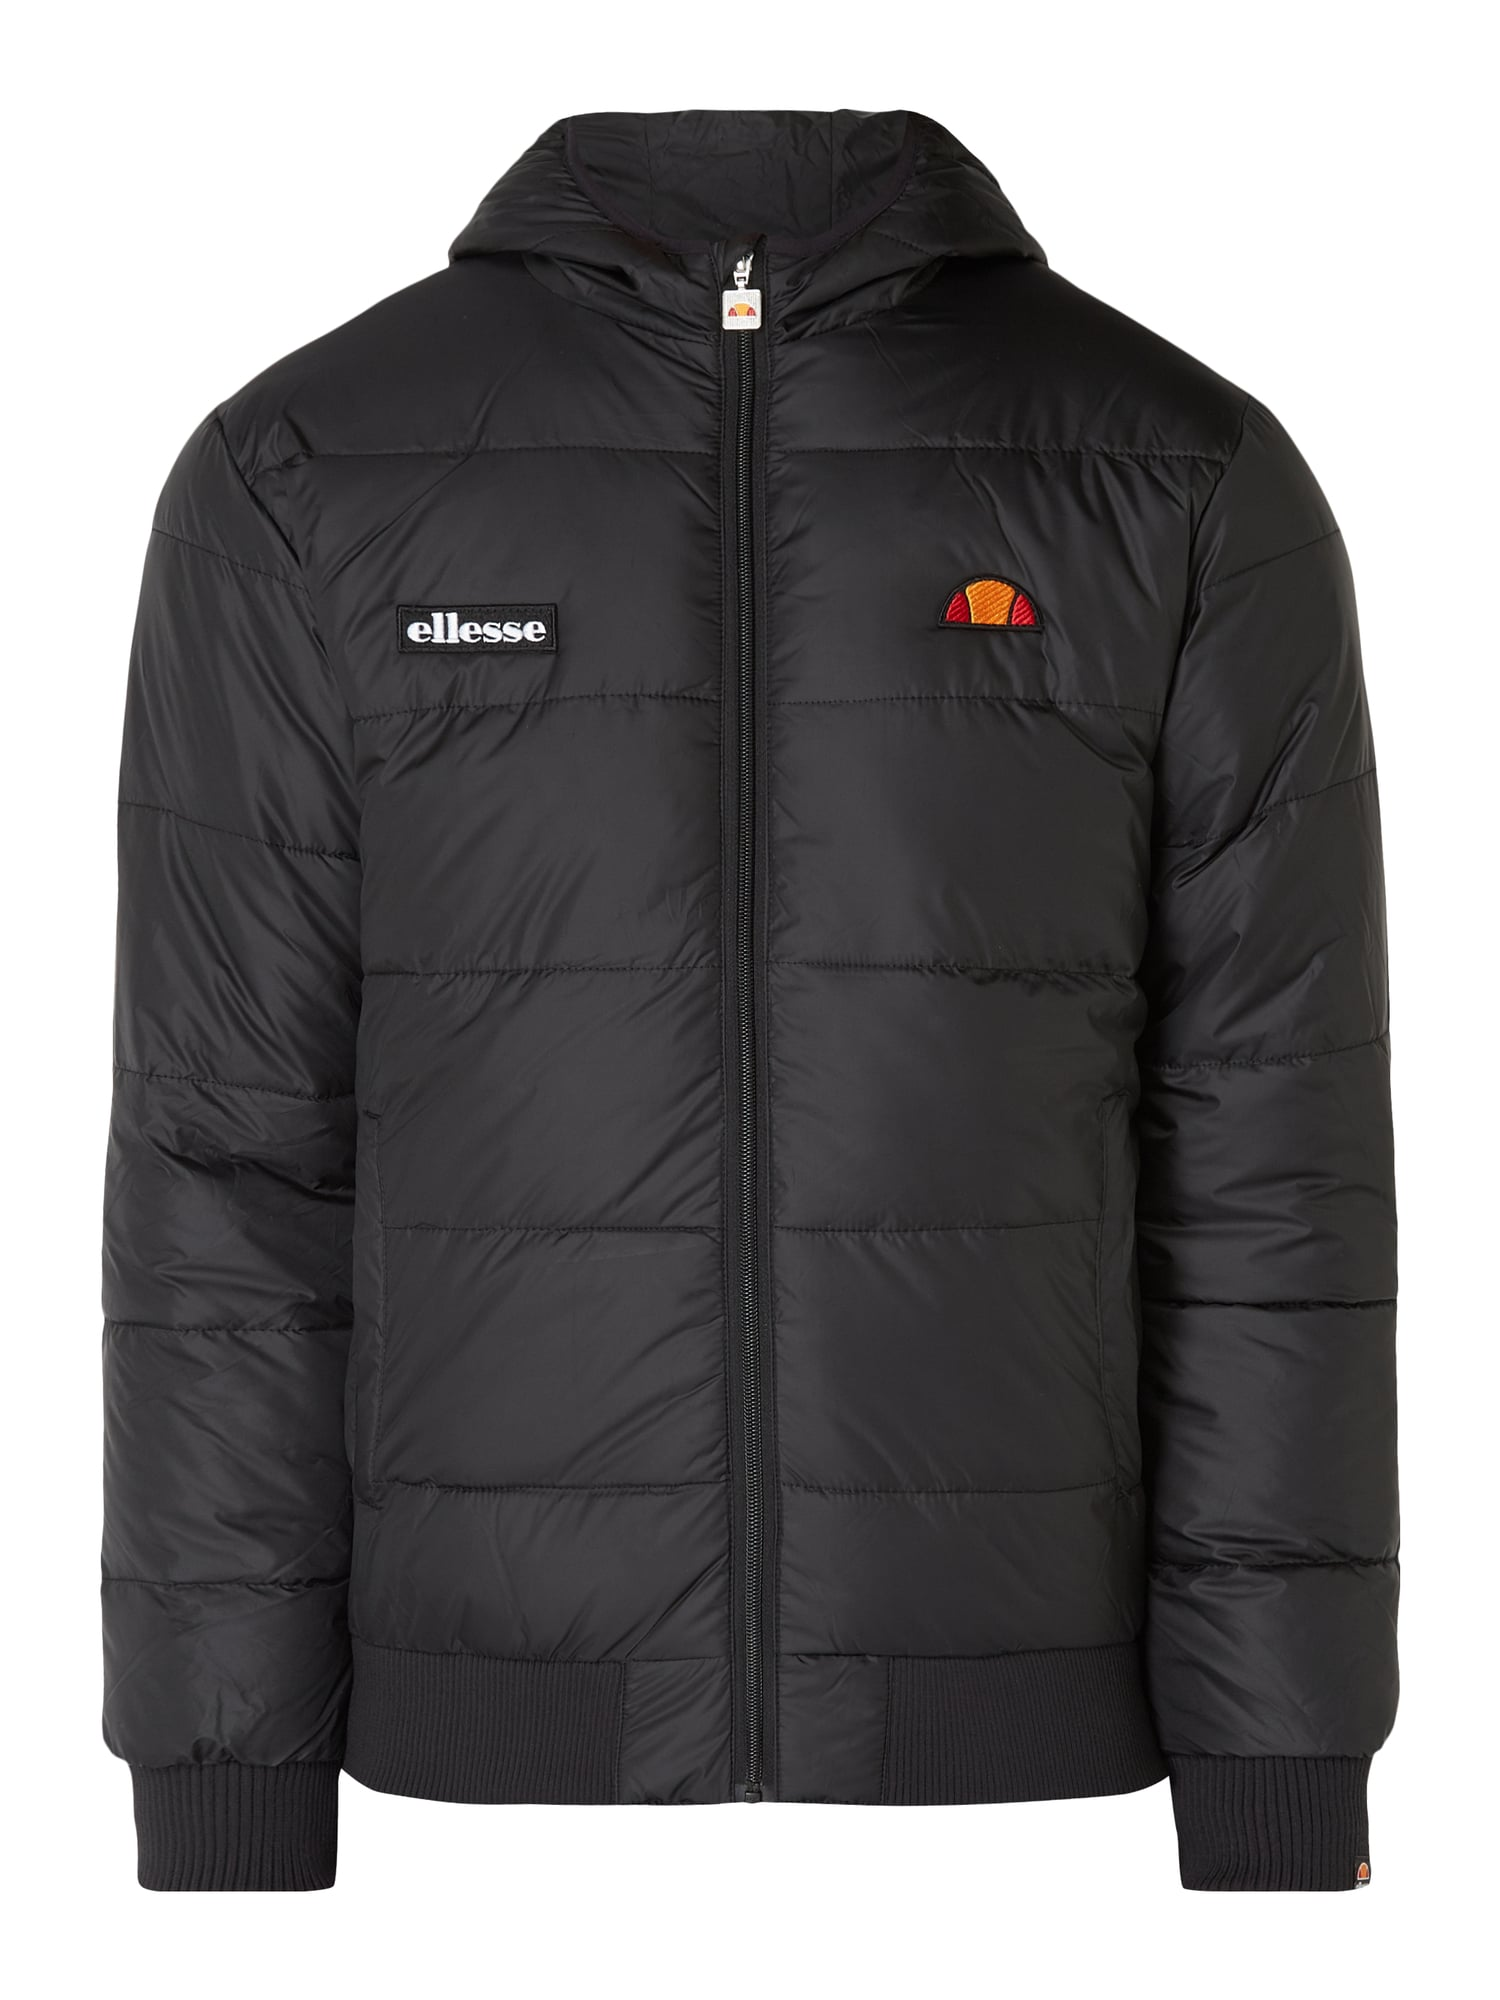 Cmp steppjacke mit thinsulateРІВ® wattierung